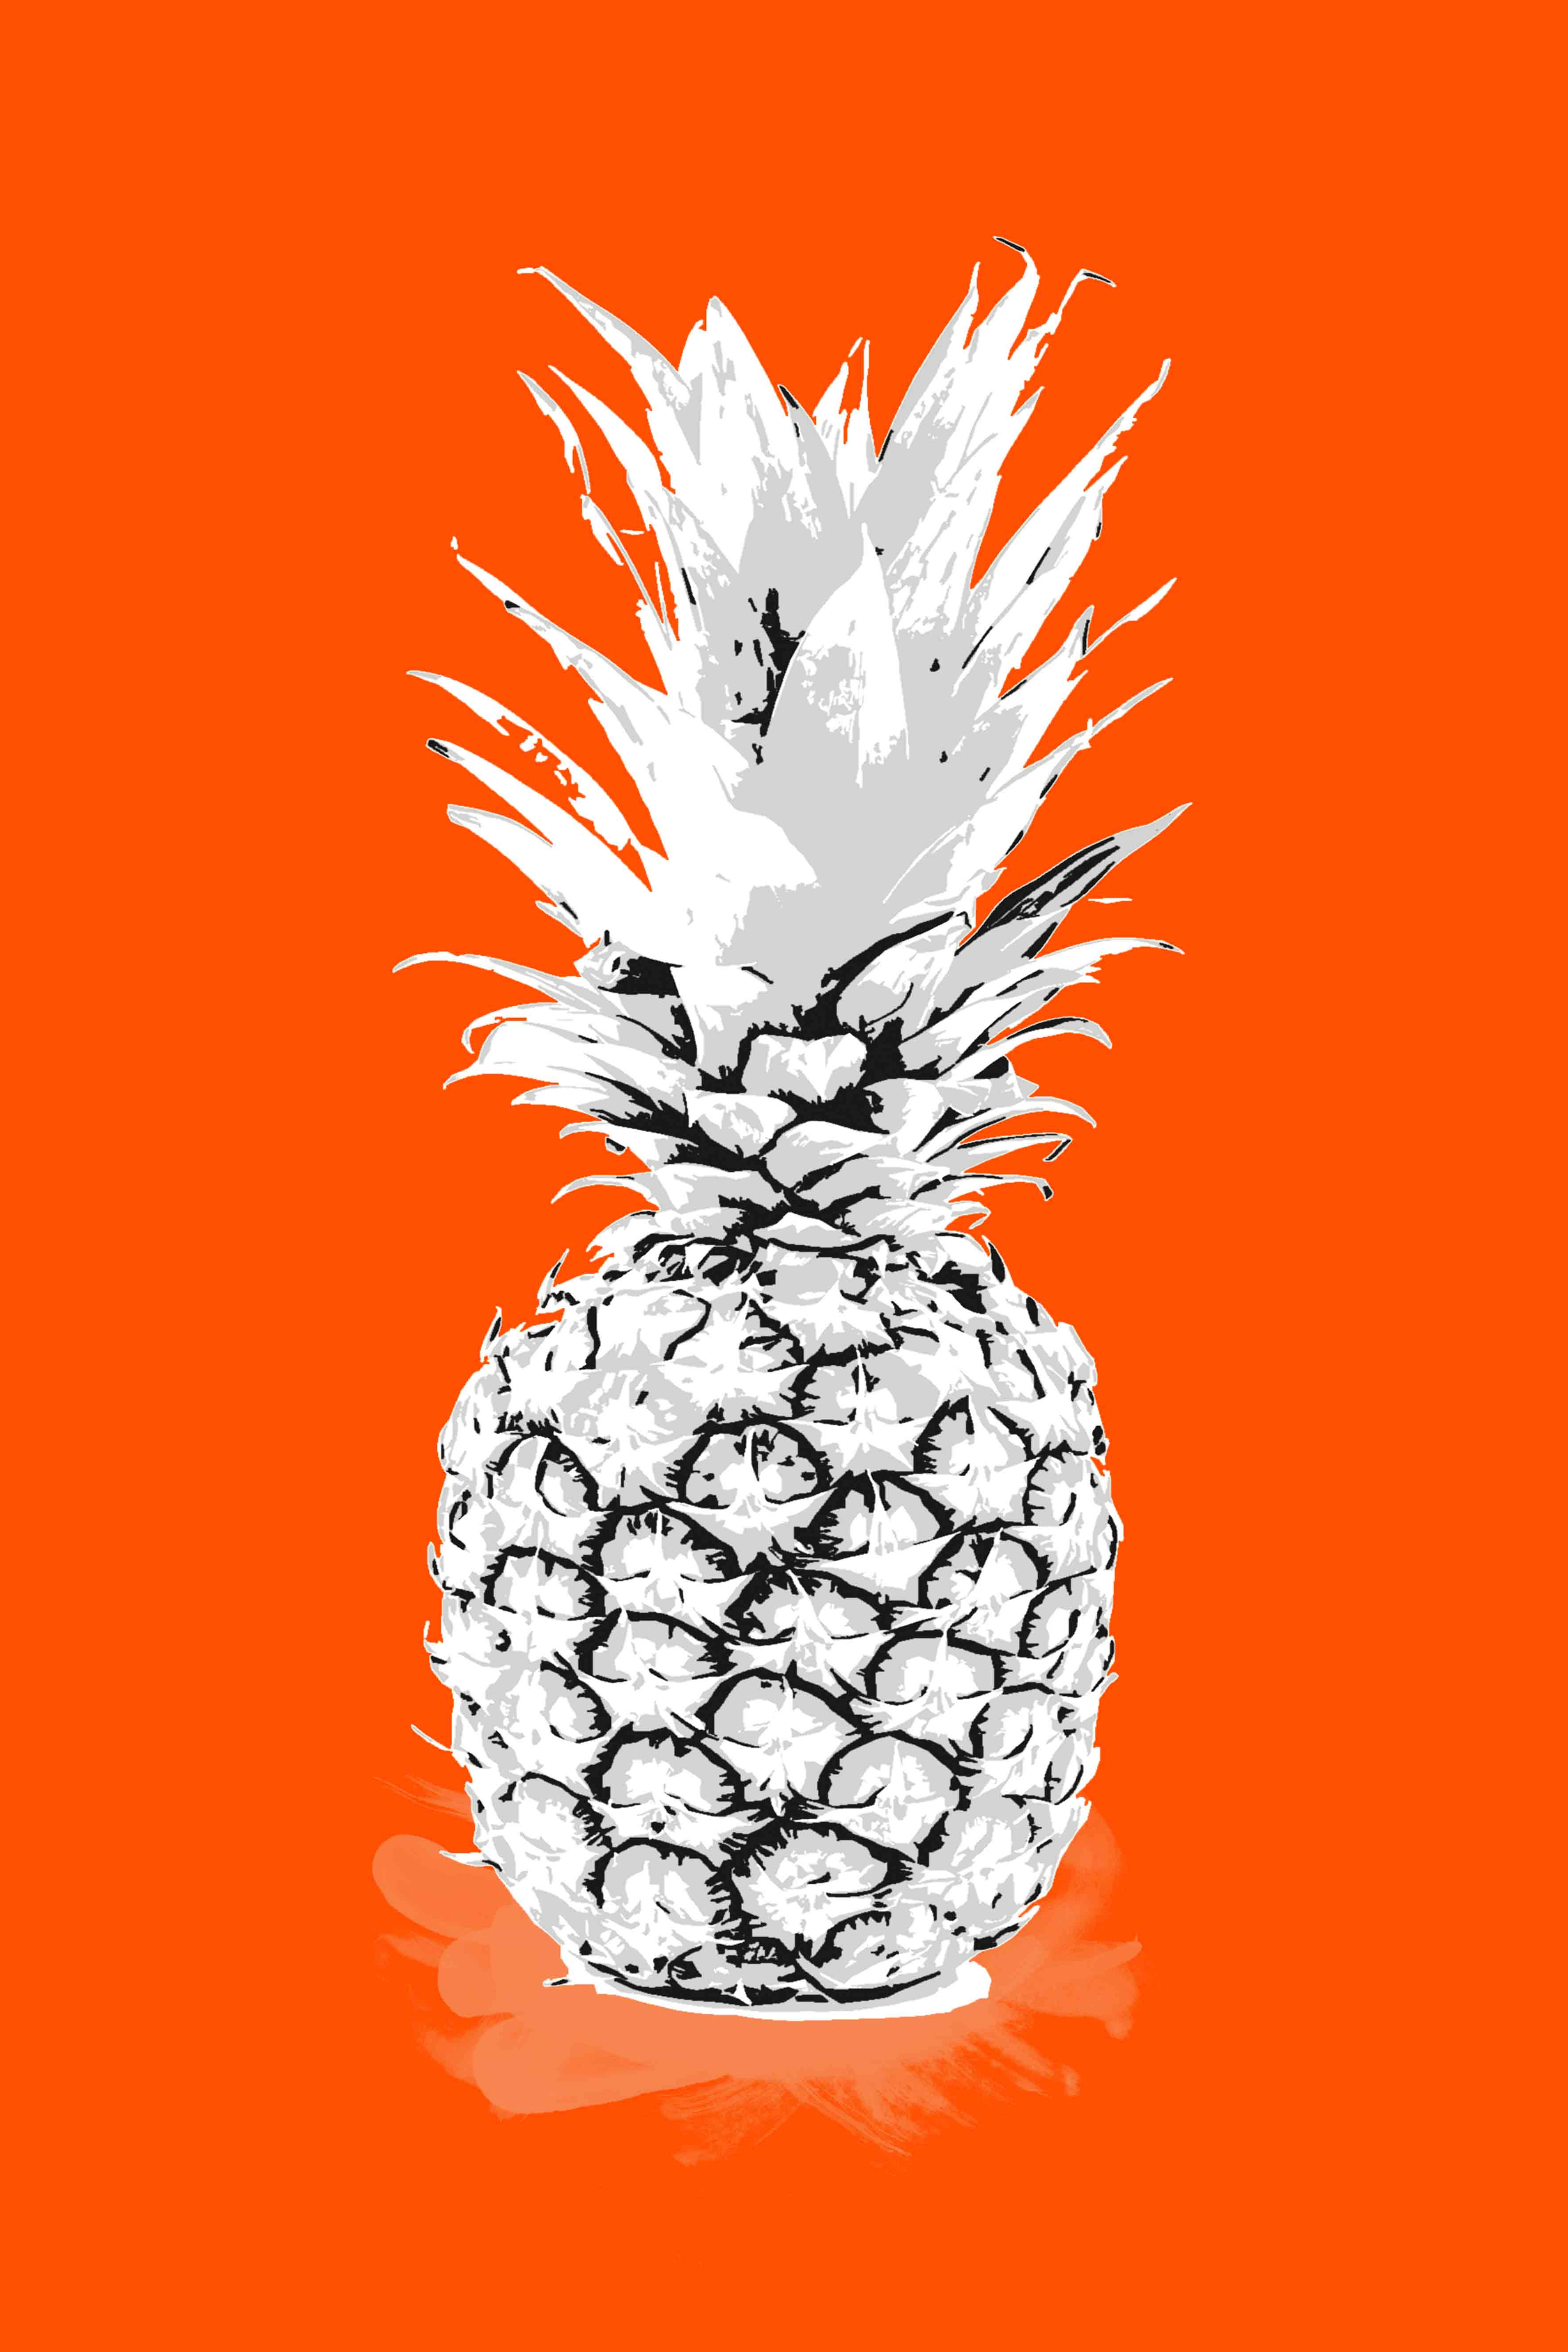 Bright pineapple canvas in orange by Janette Baker.